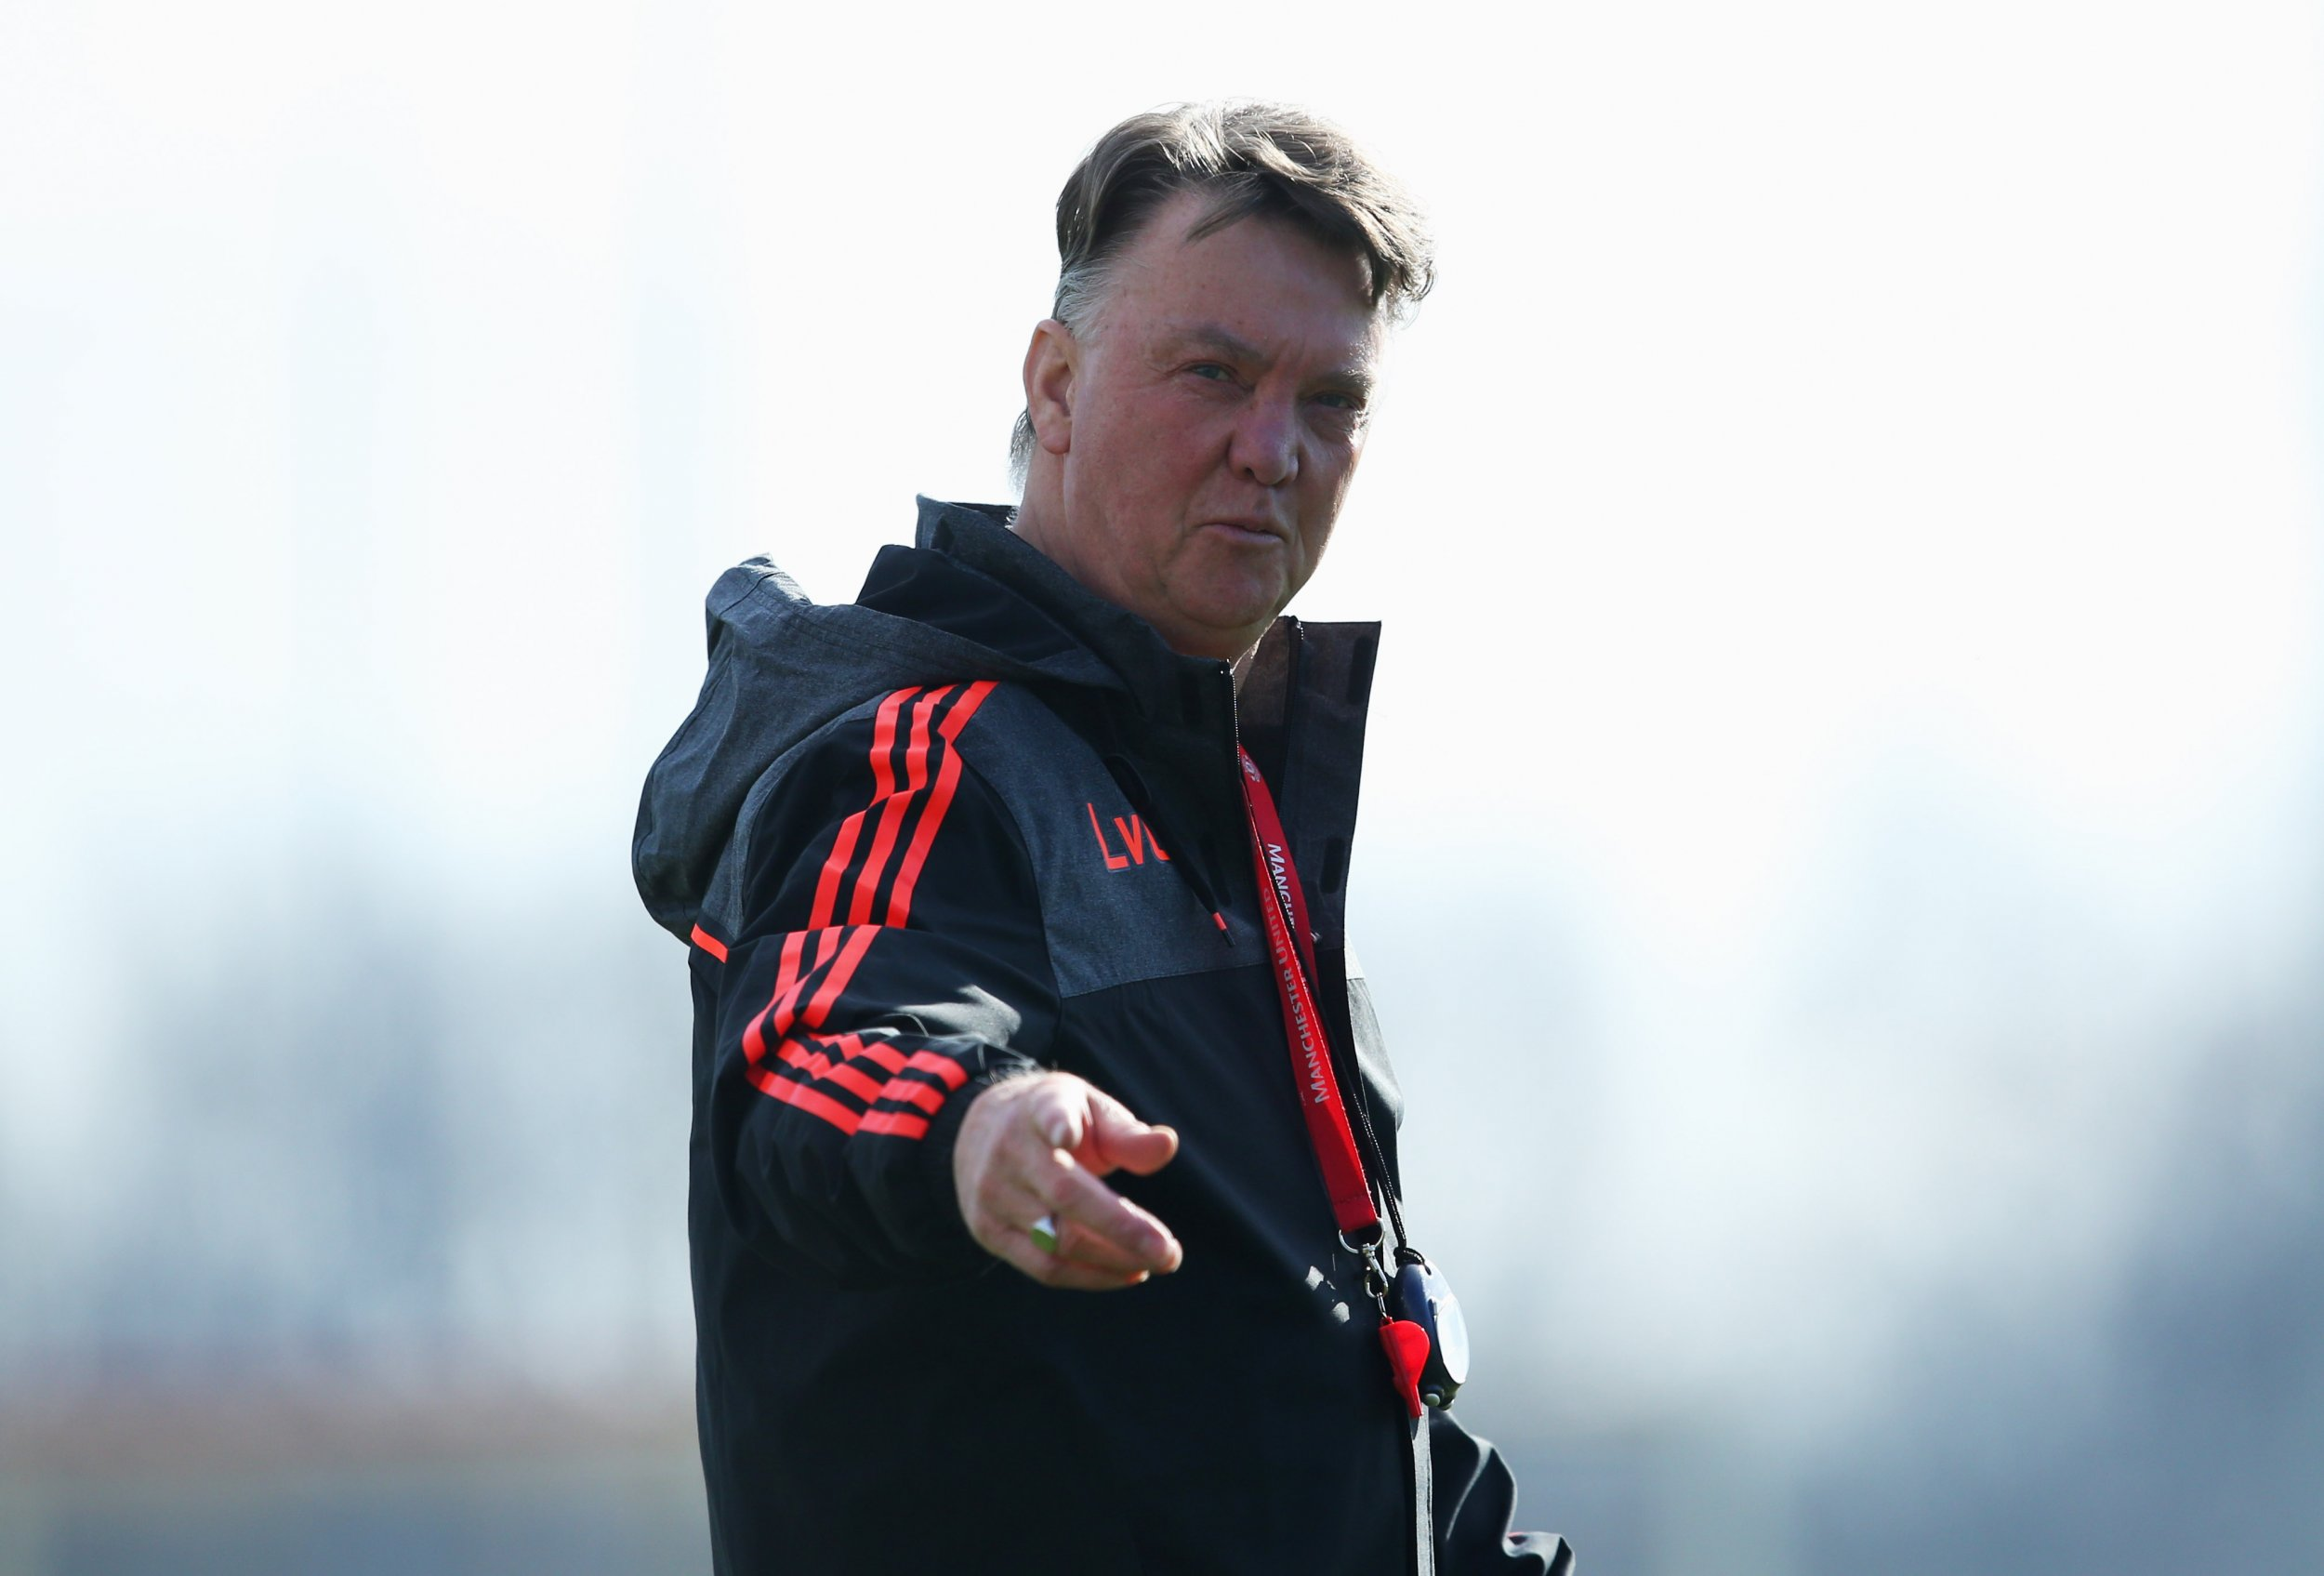 Manchester United manager Louis Van Gaal during a training session.